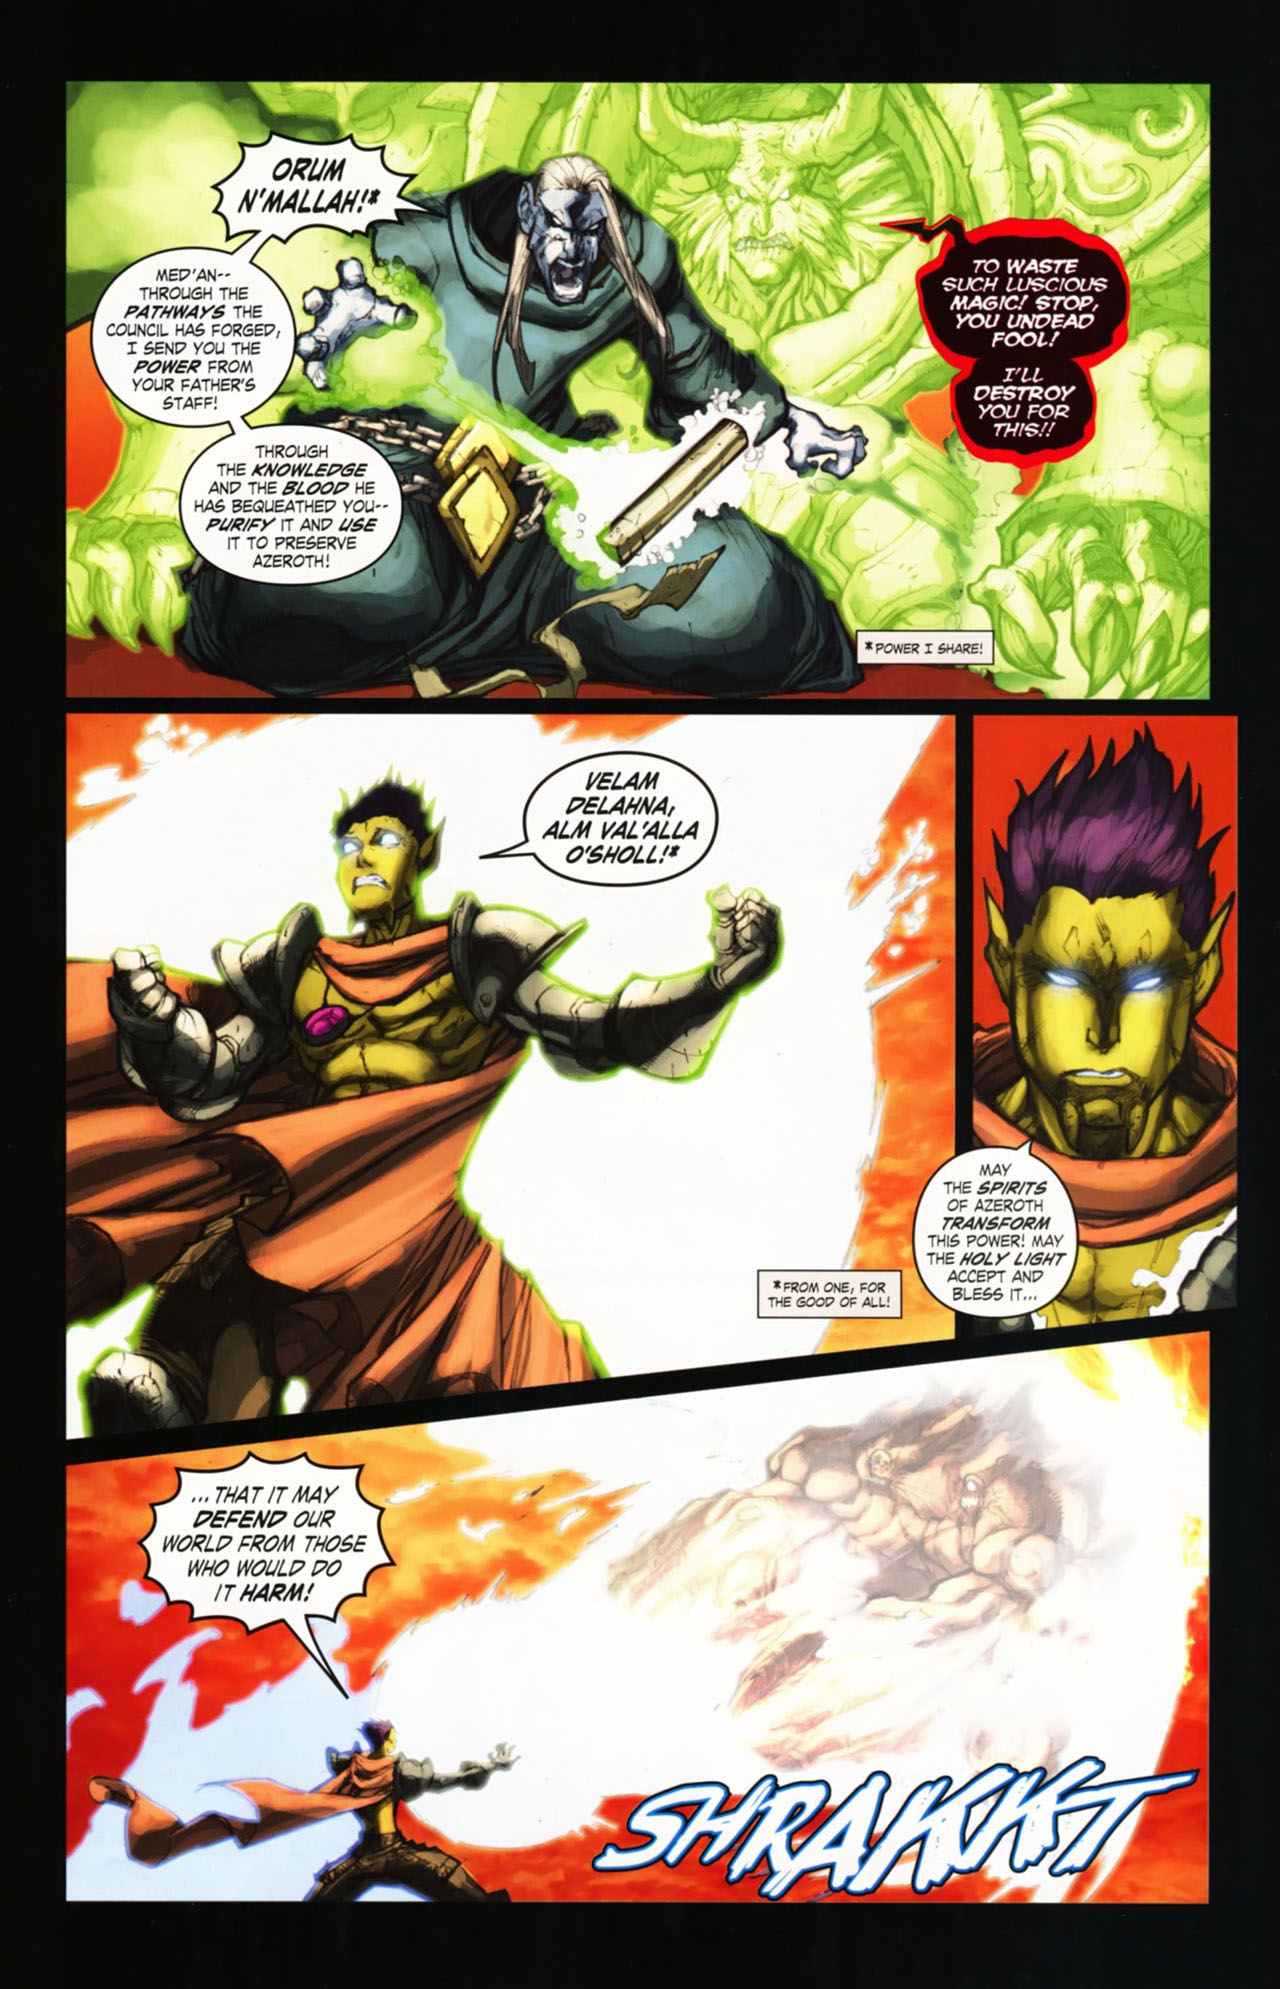 Read online World of Warcraft comic -  Issue #25 - 26